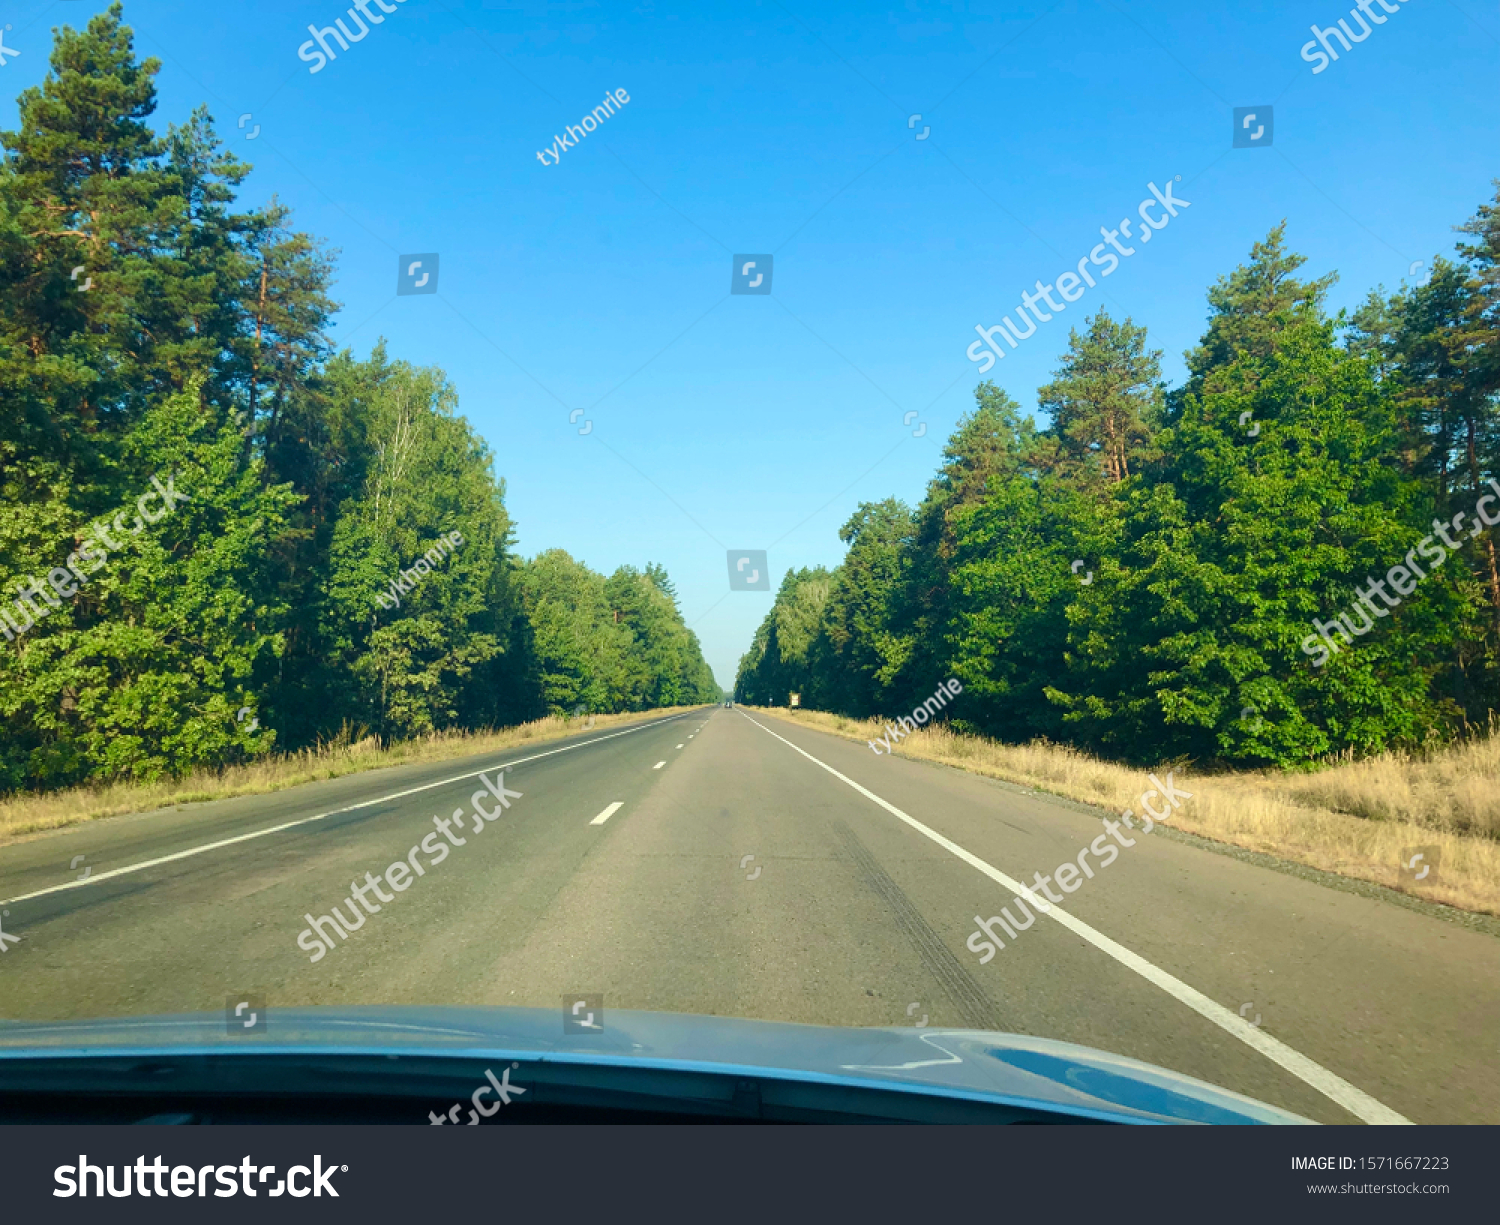 stock-photo-asphalt-highway-with-green-f